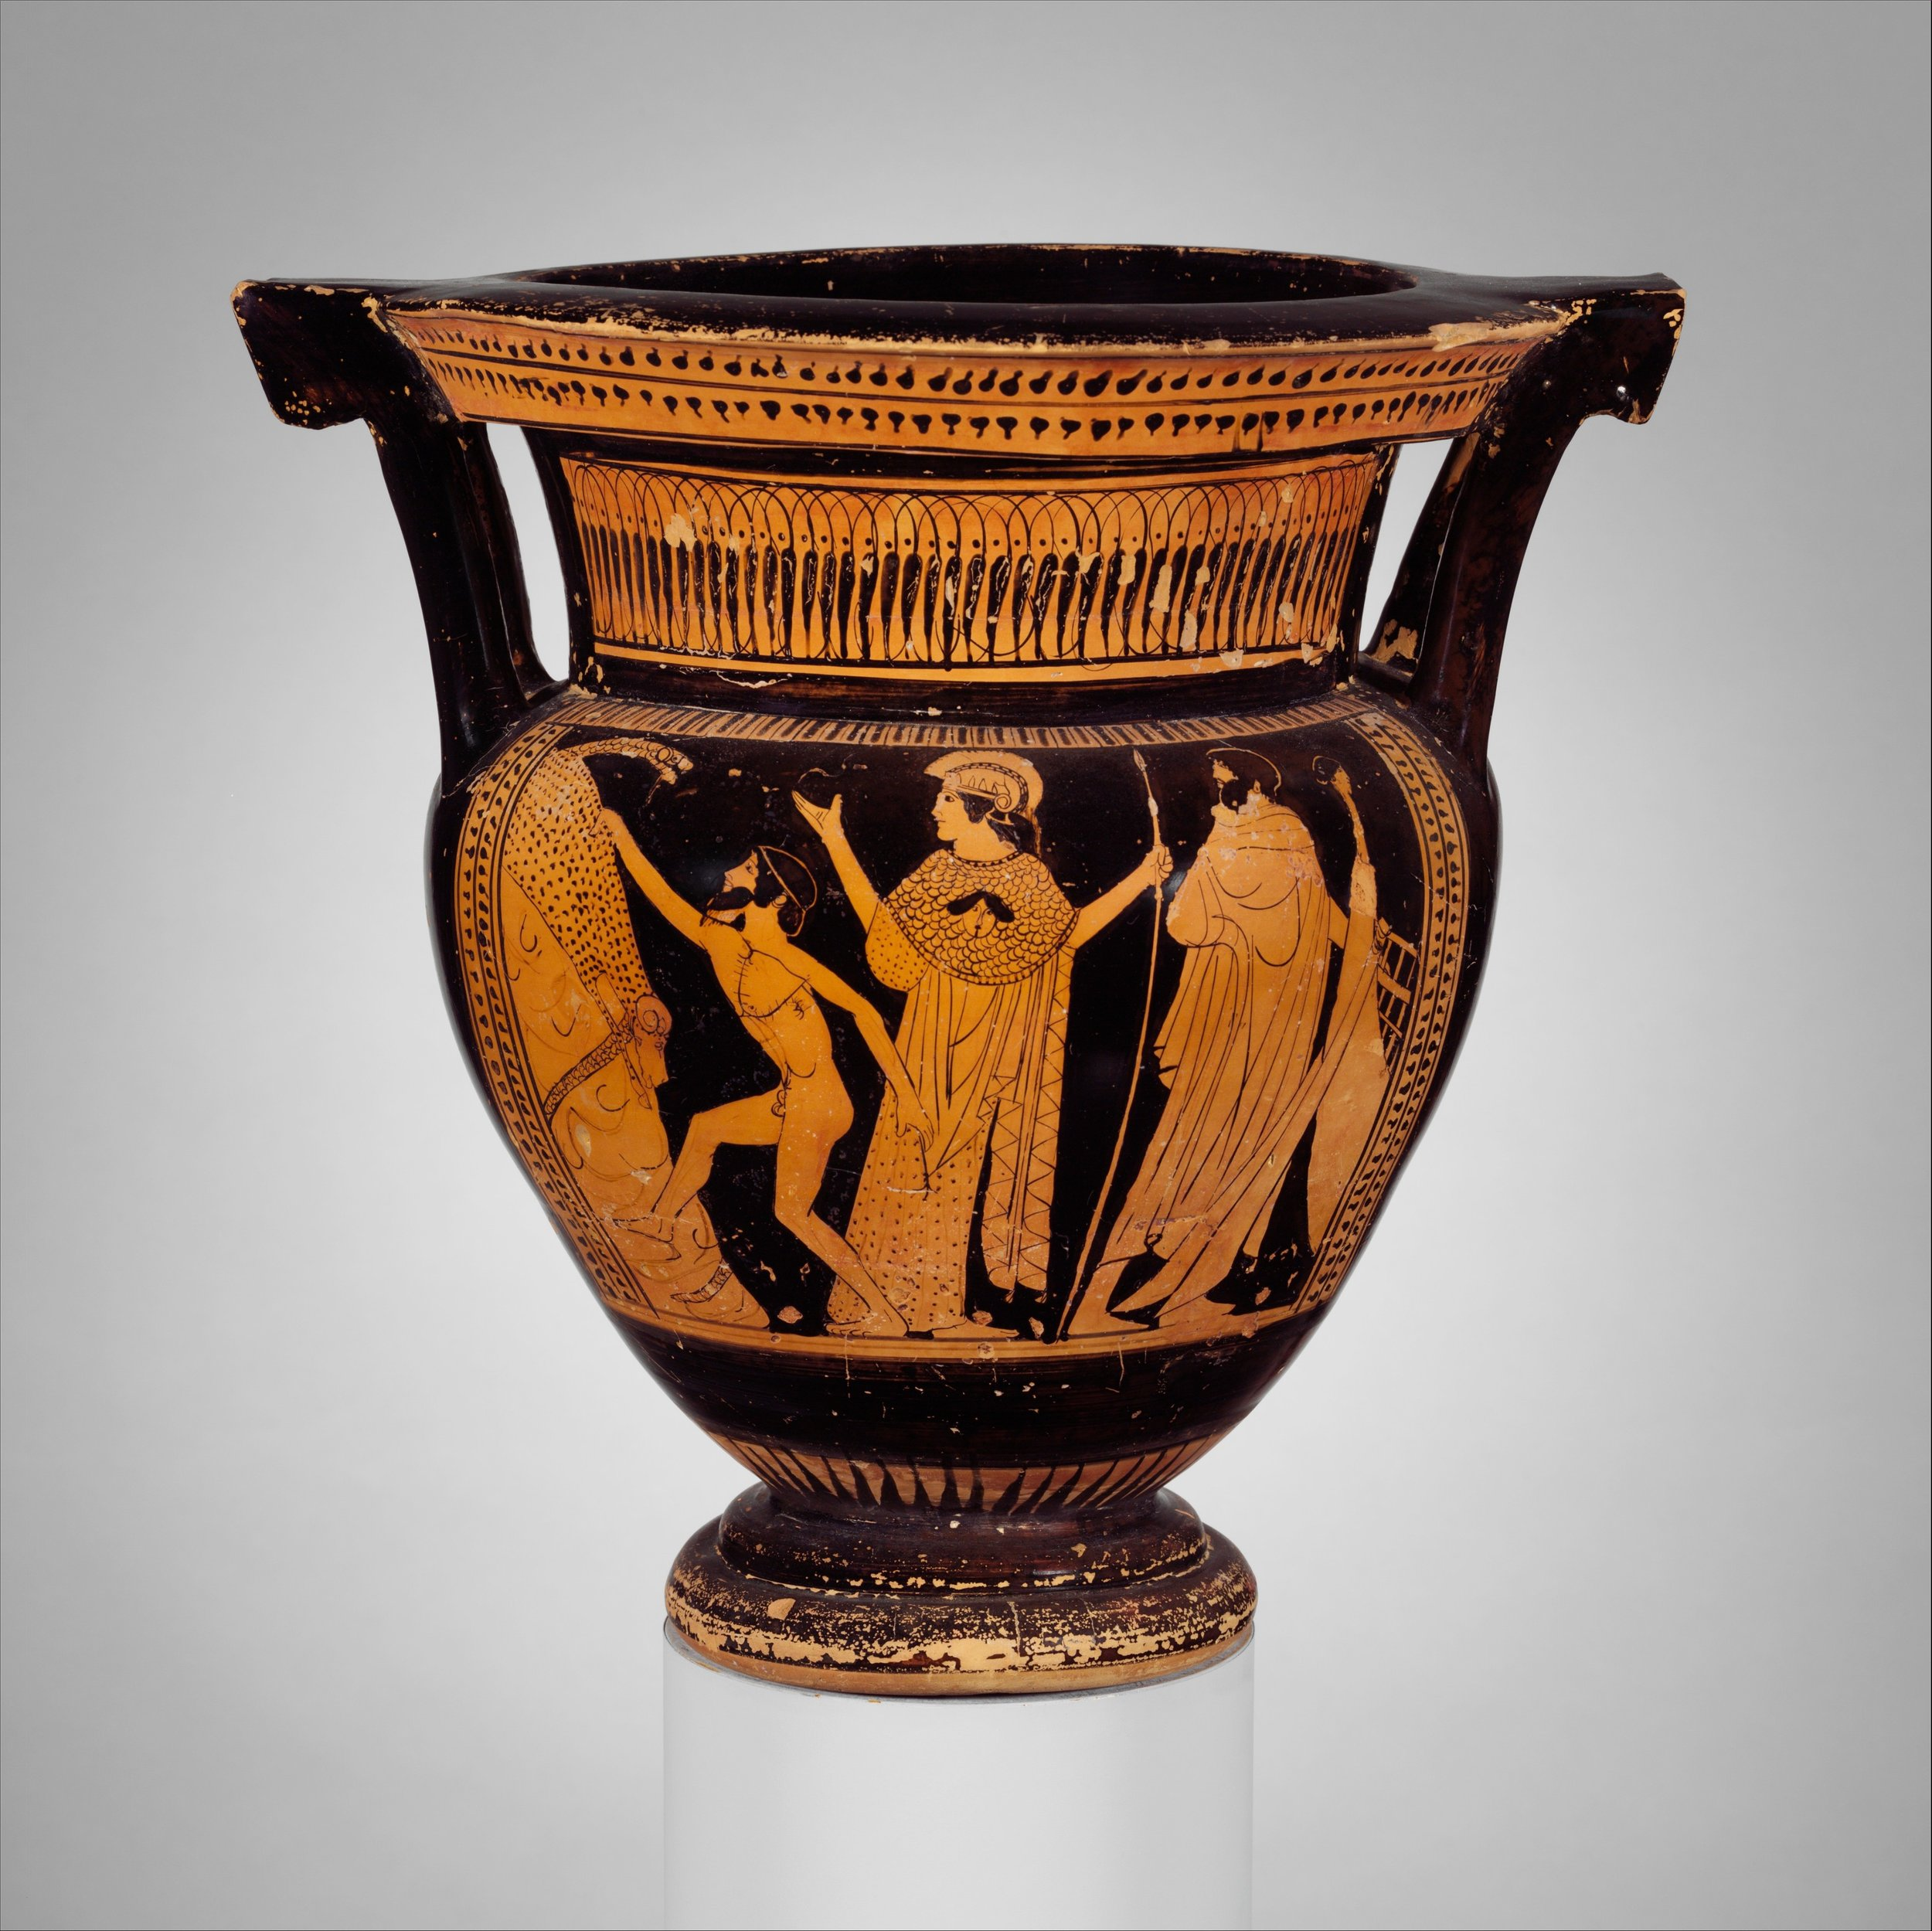 let's go traveling! - Terracotta column-krater (a bowl for mixing wine and water) showing Jason and his hunt for the Golden Fleece. Courtesy of the MET.